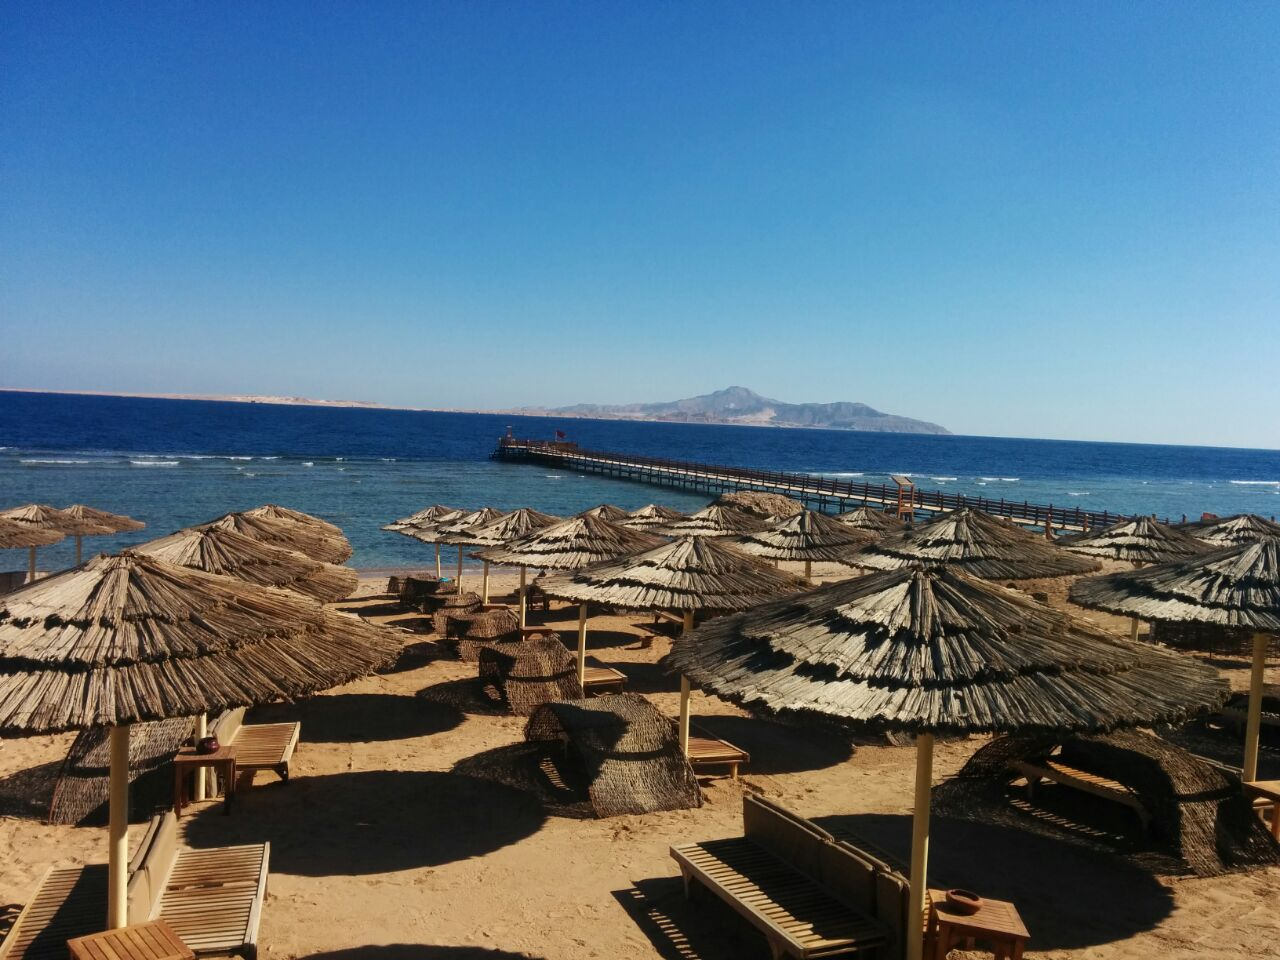 Sinai - beach with seating - Photo by Idov Torn